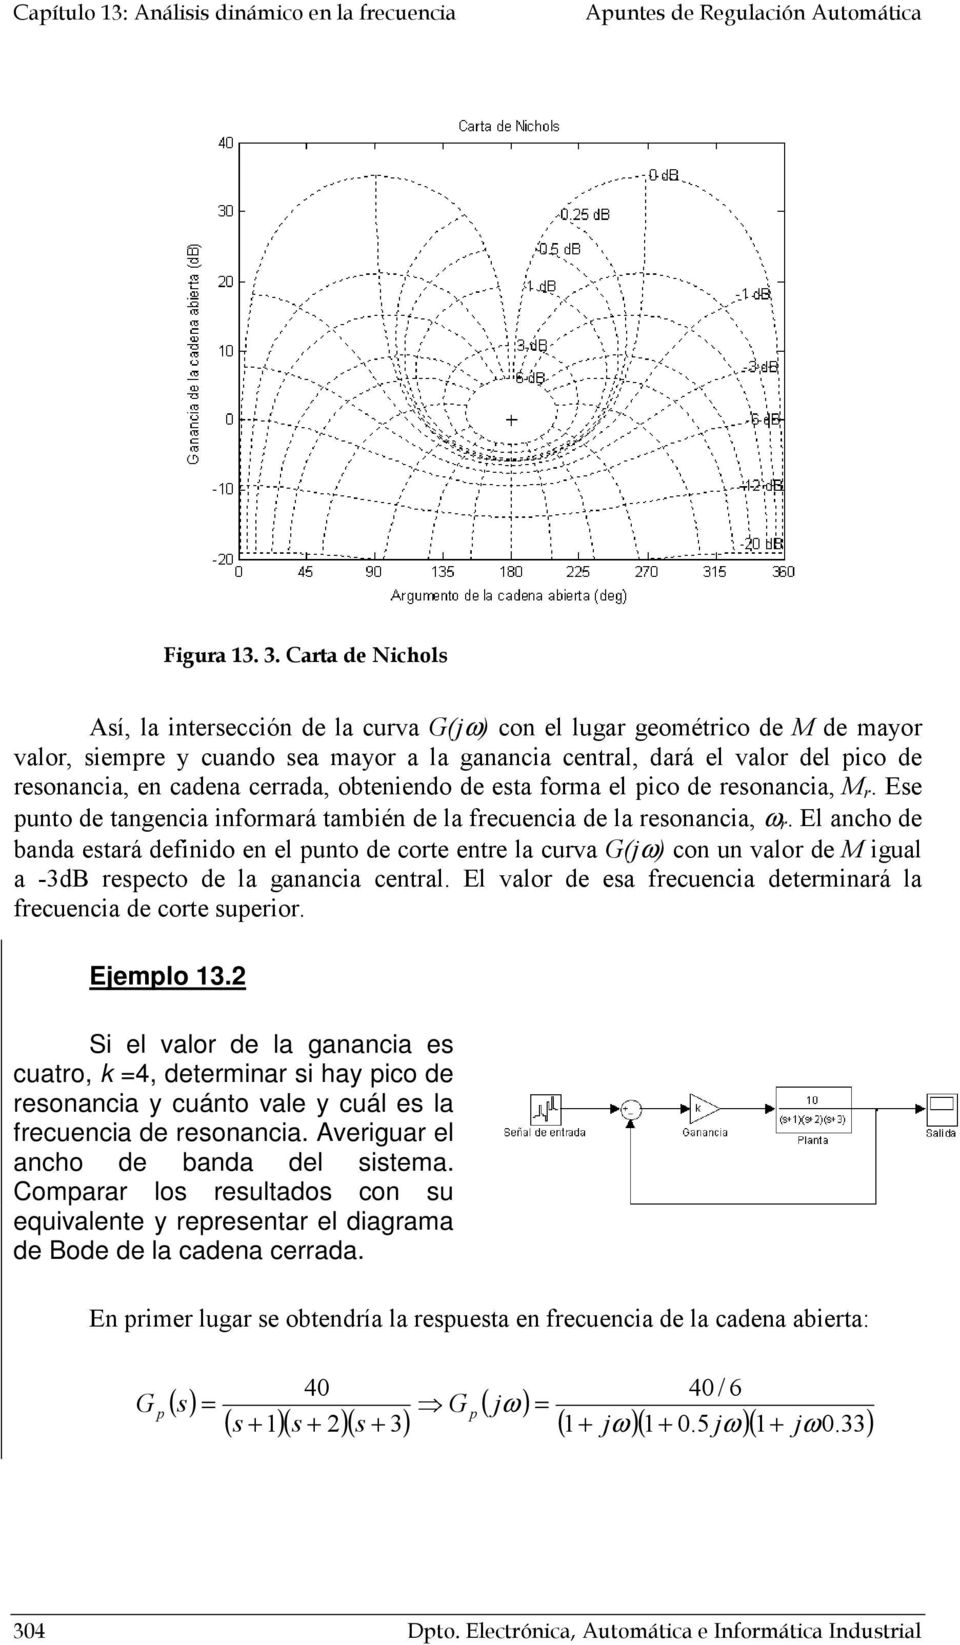 3. Carta de Nichols Así, la interseión de la curva G(j) con el lugar geométrico de de mayor valor, siempre y cuando sea mayor a la ganancia central, dará el valor del pico de resonancia, en cadena